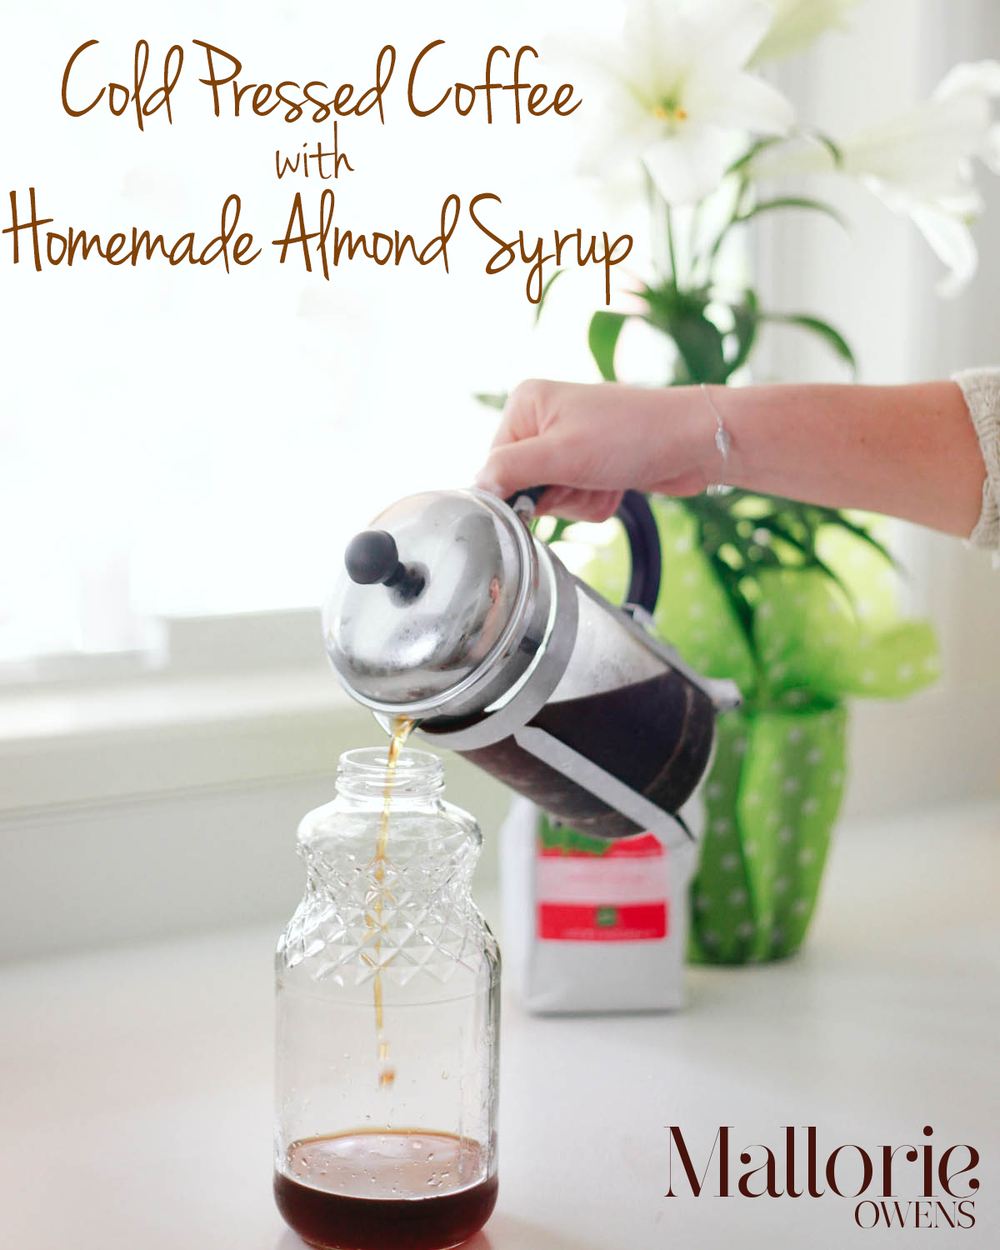 Cold Pressed Coffee with Homemade Almond Syrup Recipe | Mallorie Owens